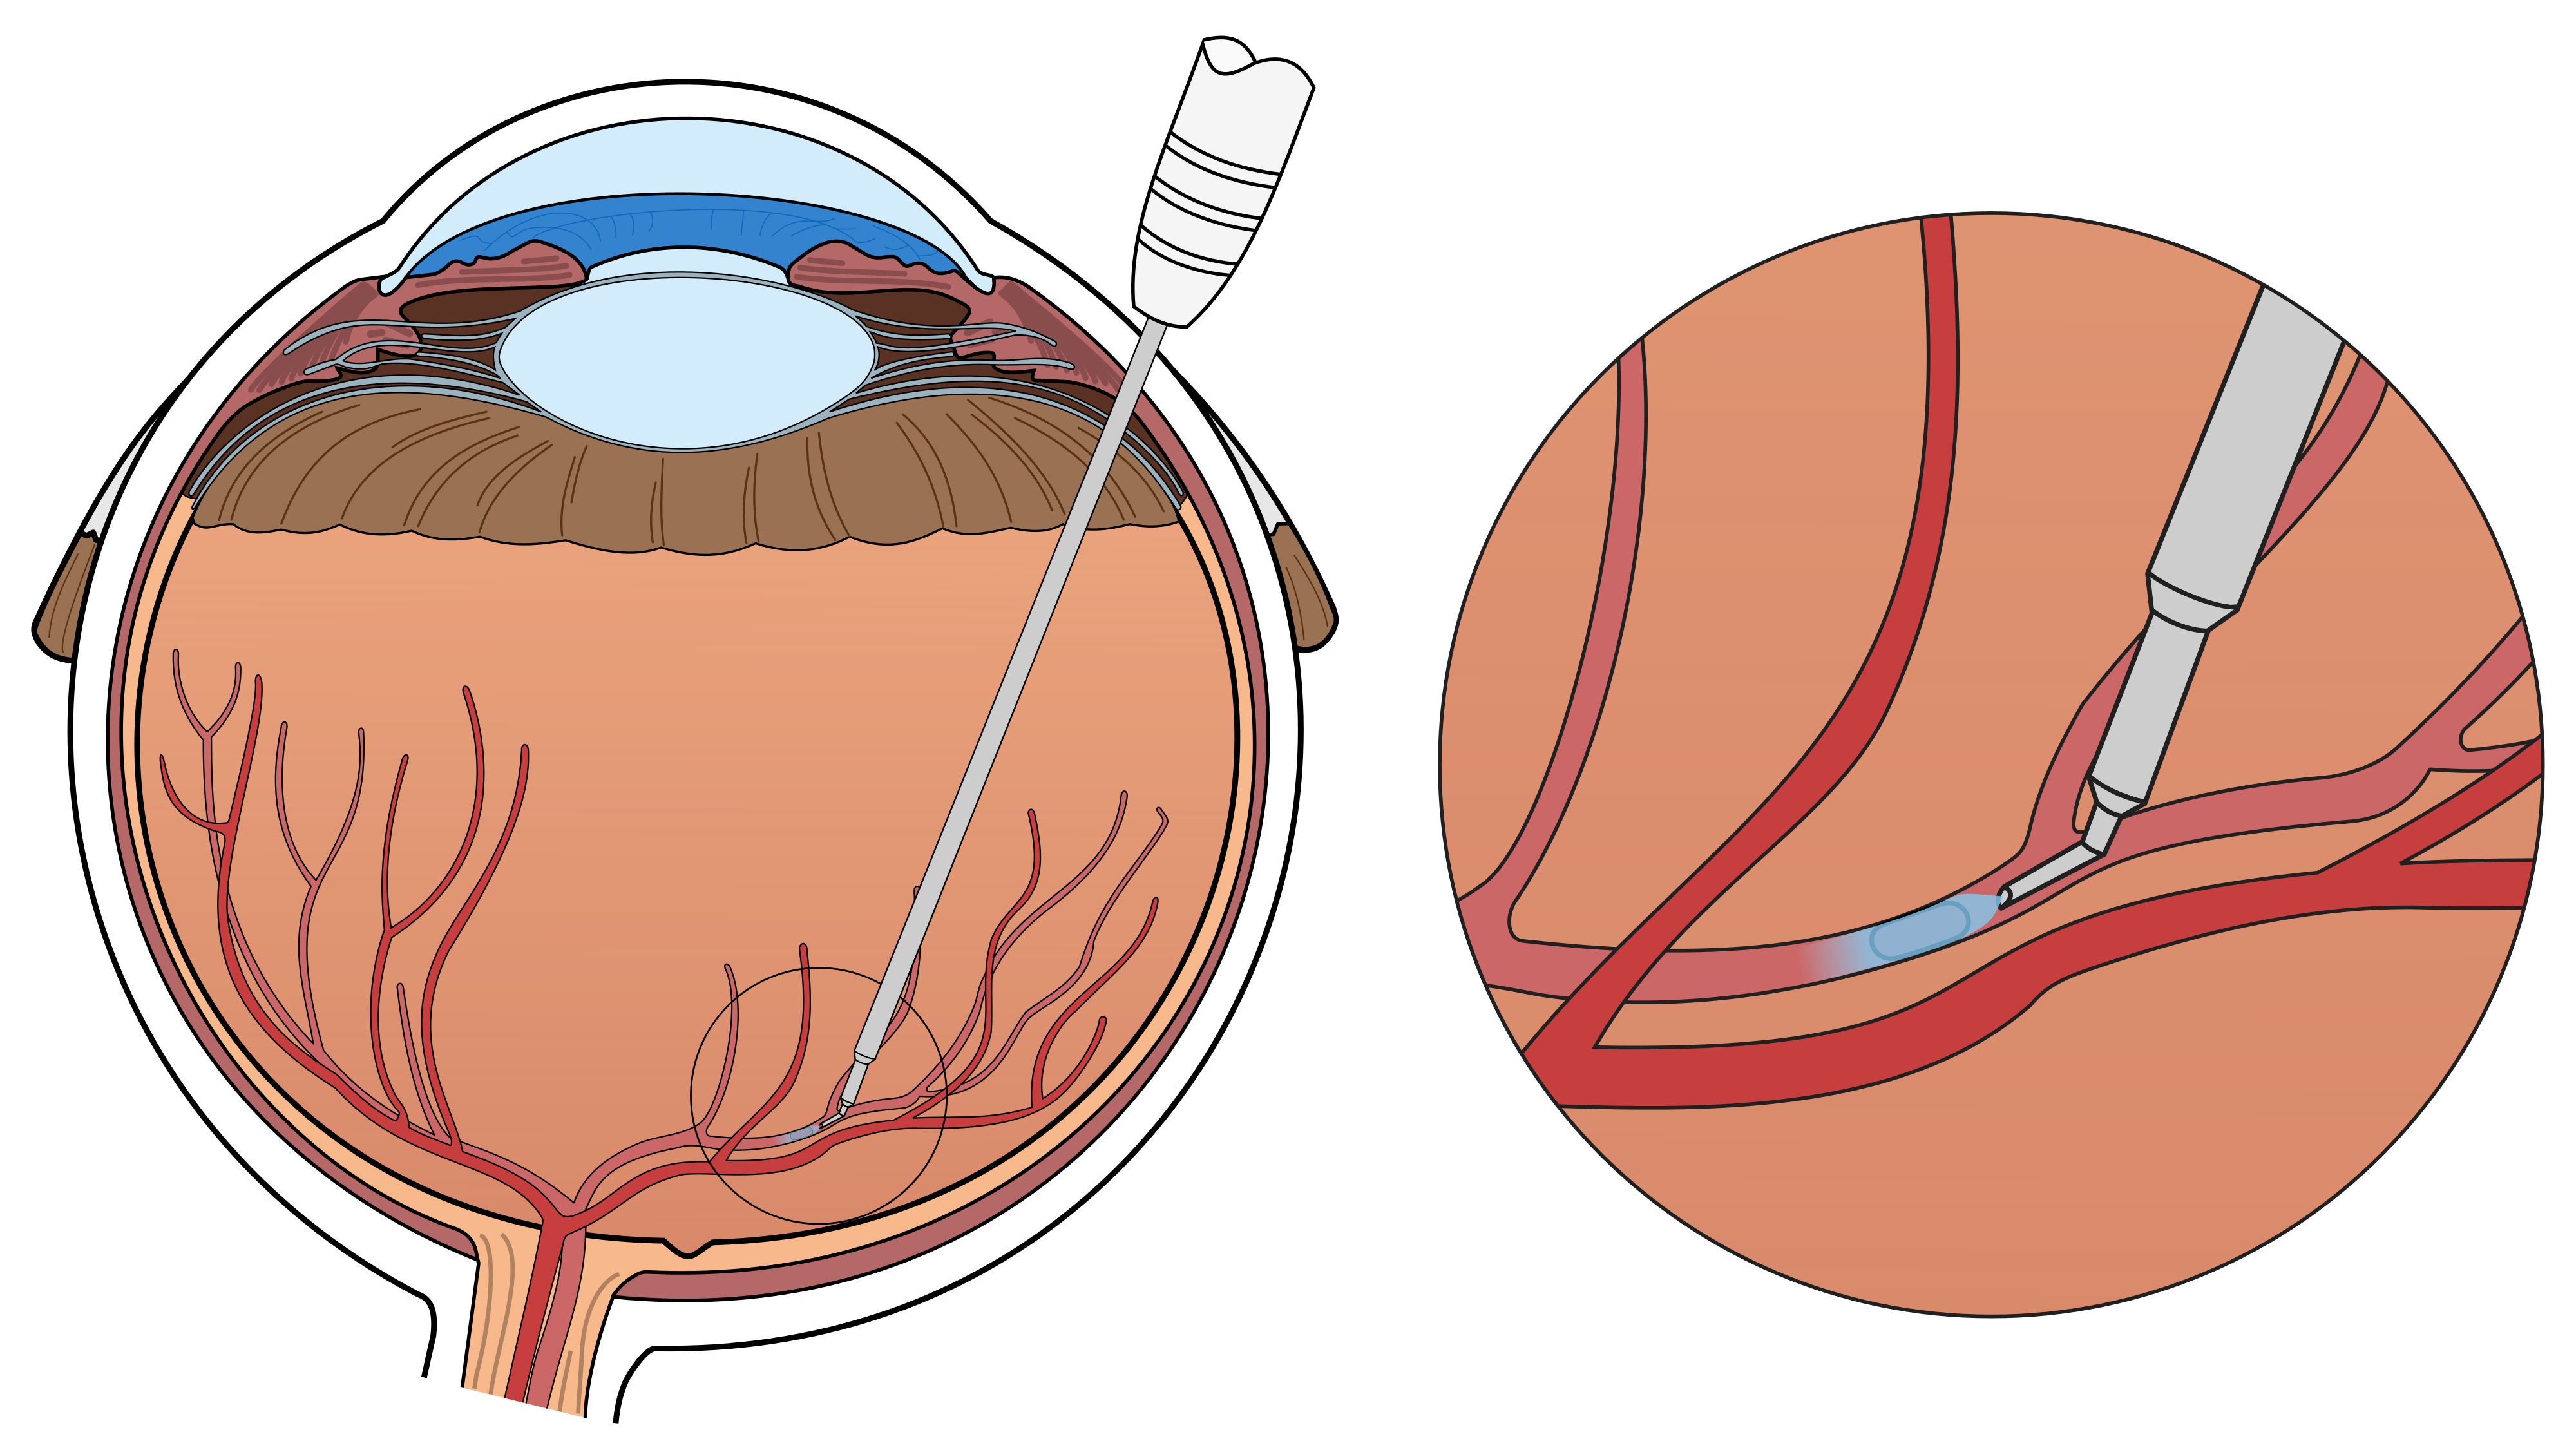 Surgical eye robot performs. Psychology clipart brain surgeon